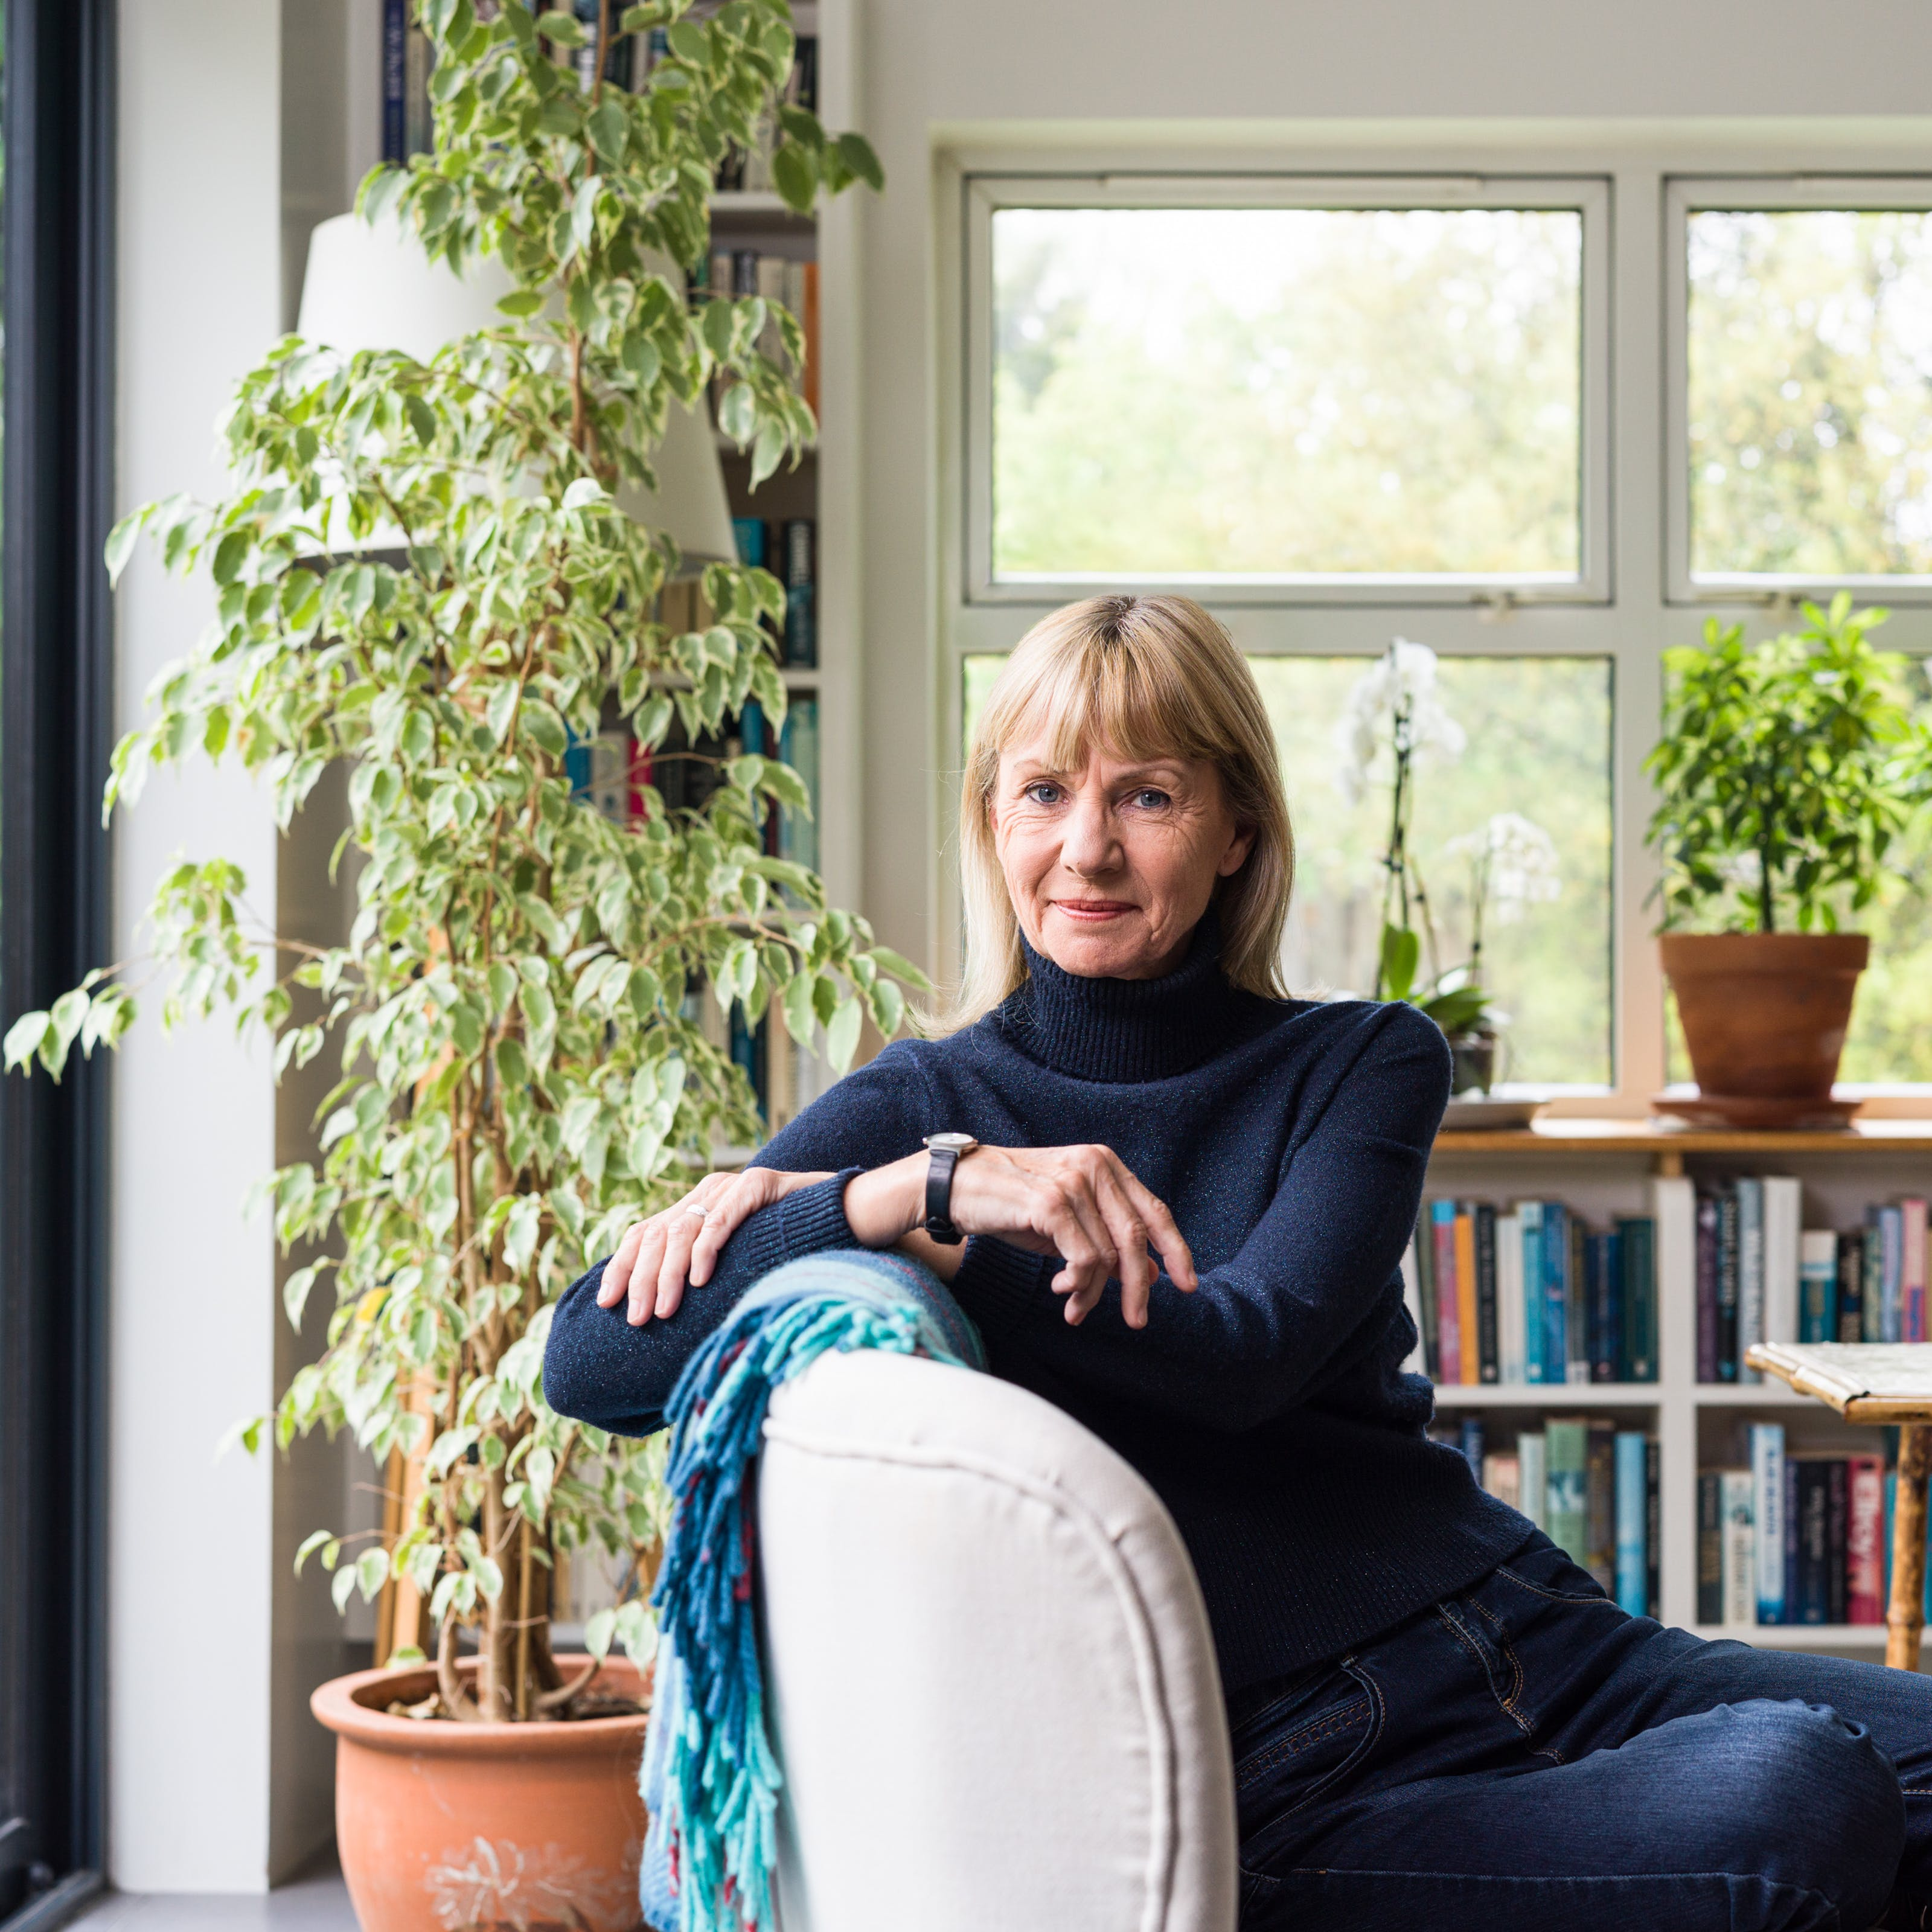 A photographic portrait of a woman with blonde hair wearing a navy turtleneck jumper and blue jeans. She is leaning to the left over the back of a sofa and in the background are a number of houseplants and shelves full of books.